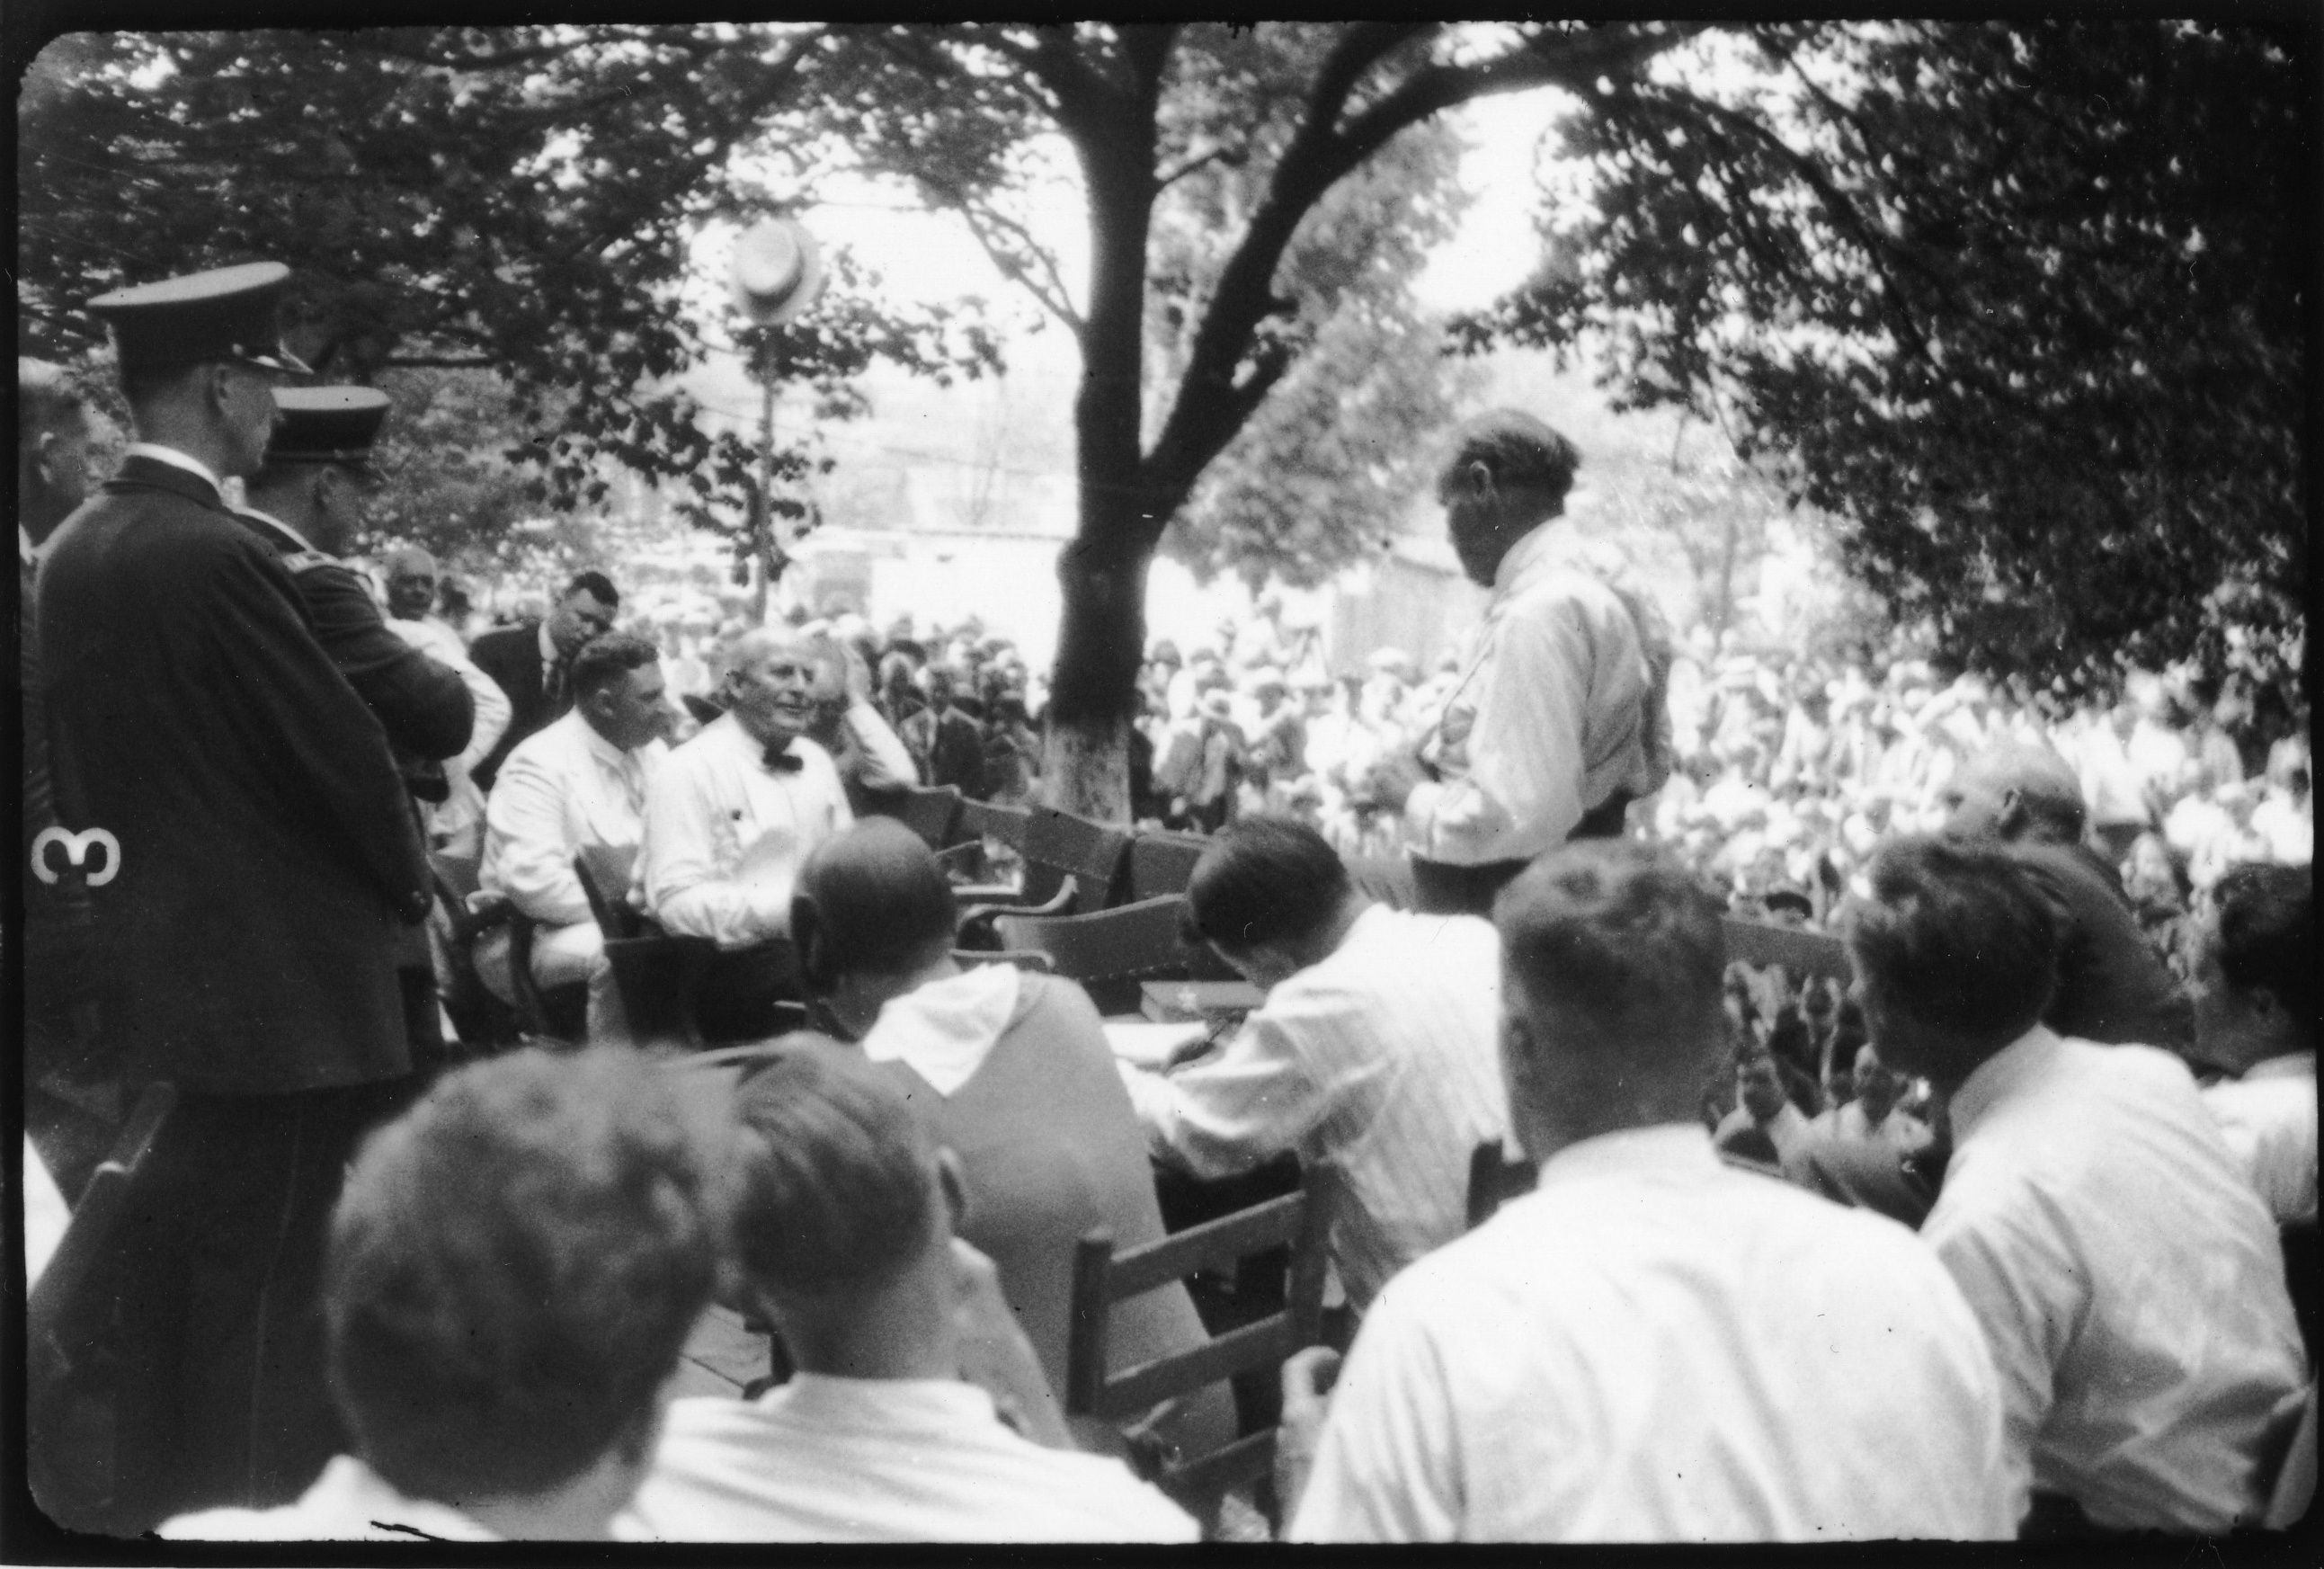 The Scopes Trial: Creationism vs Evolution in Public School